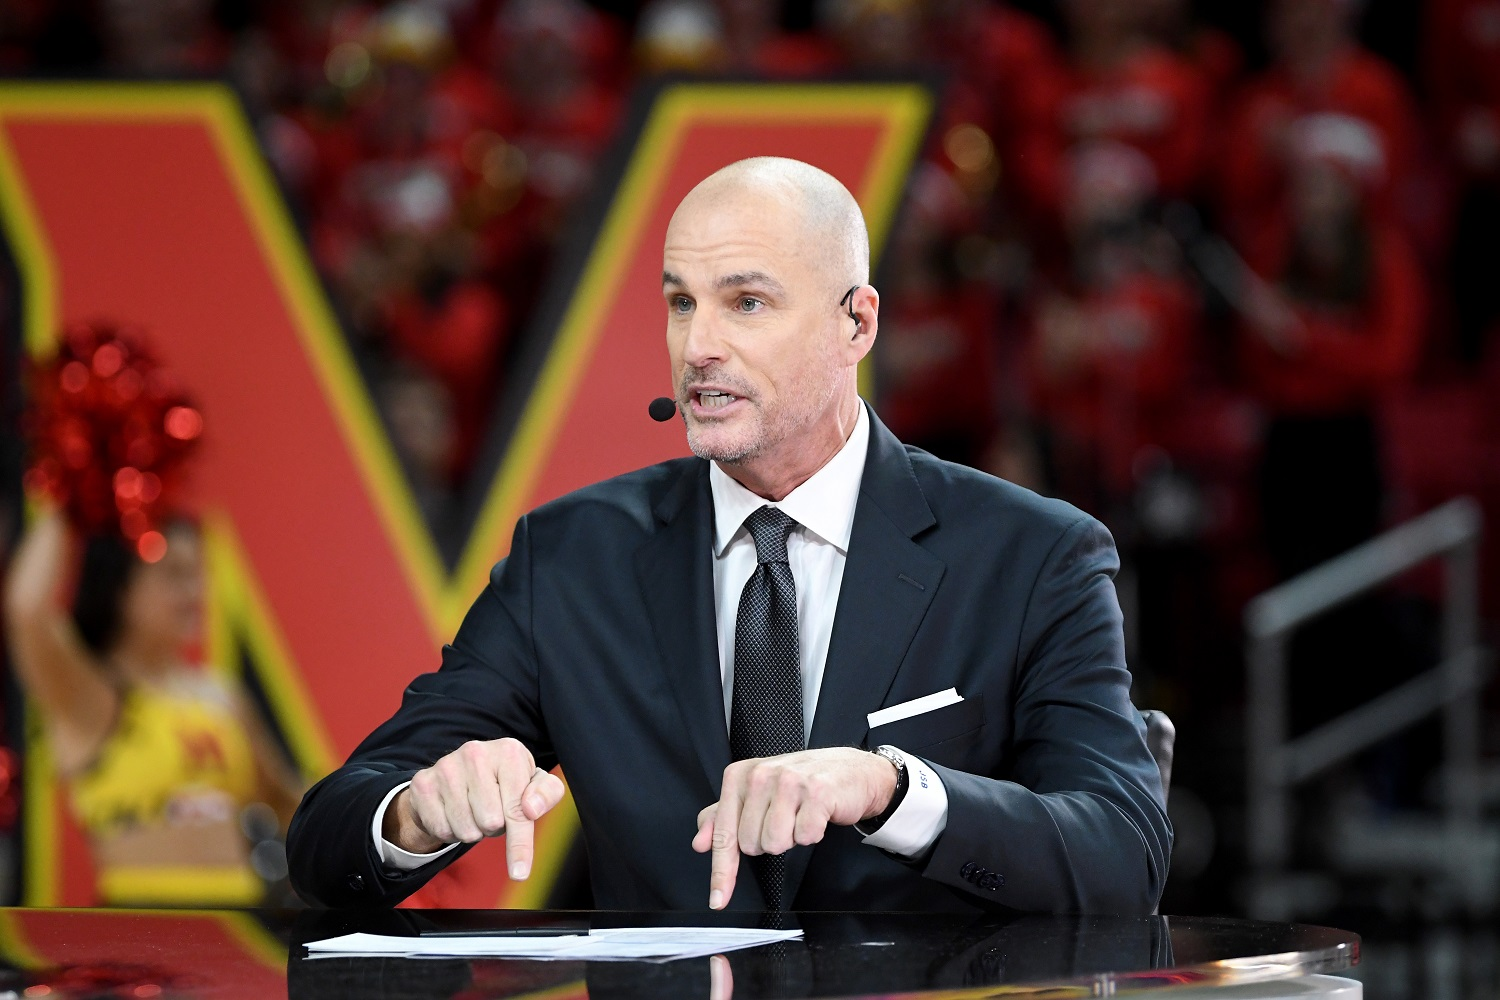 ESPN analyst Jay Bilas' criticism of Syracuse coach Jim Boeheim was unfair because it associated him with a racial issue.